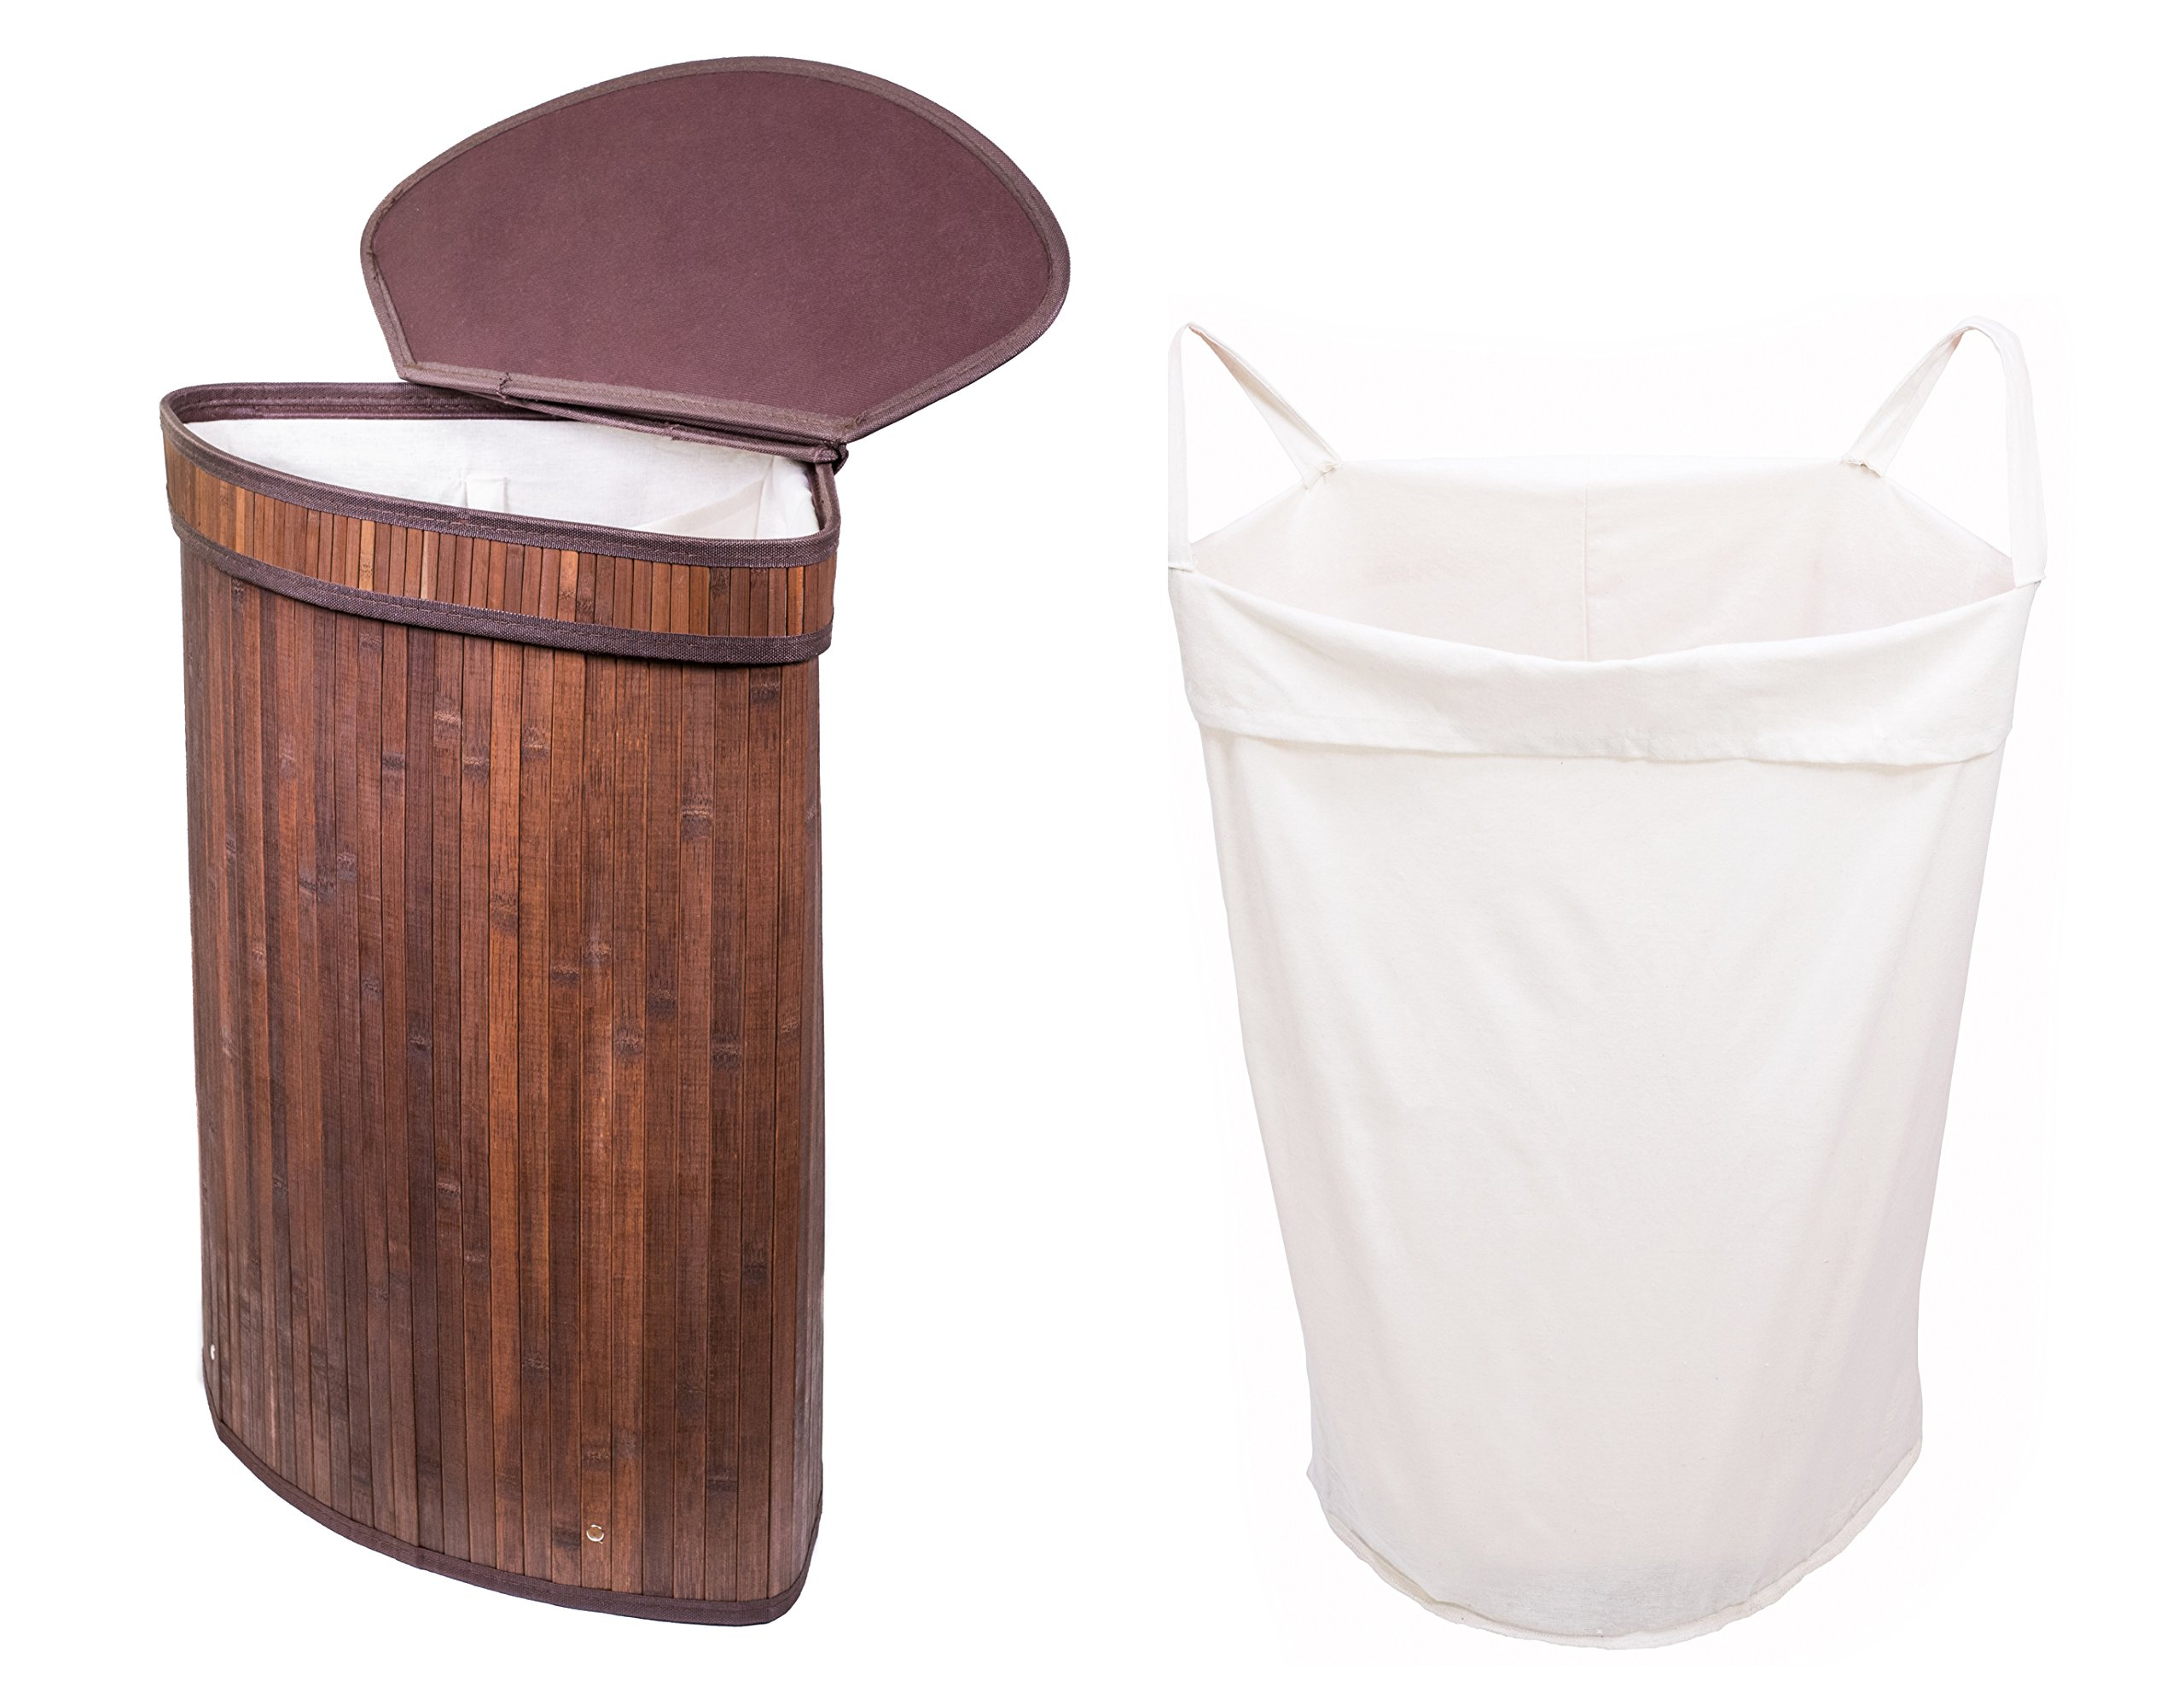 Adorn Home Single/Double Corner Bamboo Laundry Hamper with Attached Hinged Lid |Single and Double Cloth Liners | Handle on Basket and Liner | Collapsible | Espresso Bamboo/Black Bamboo (Brown)